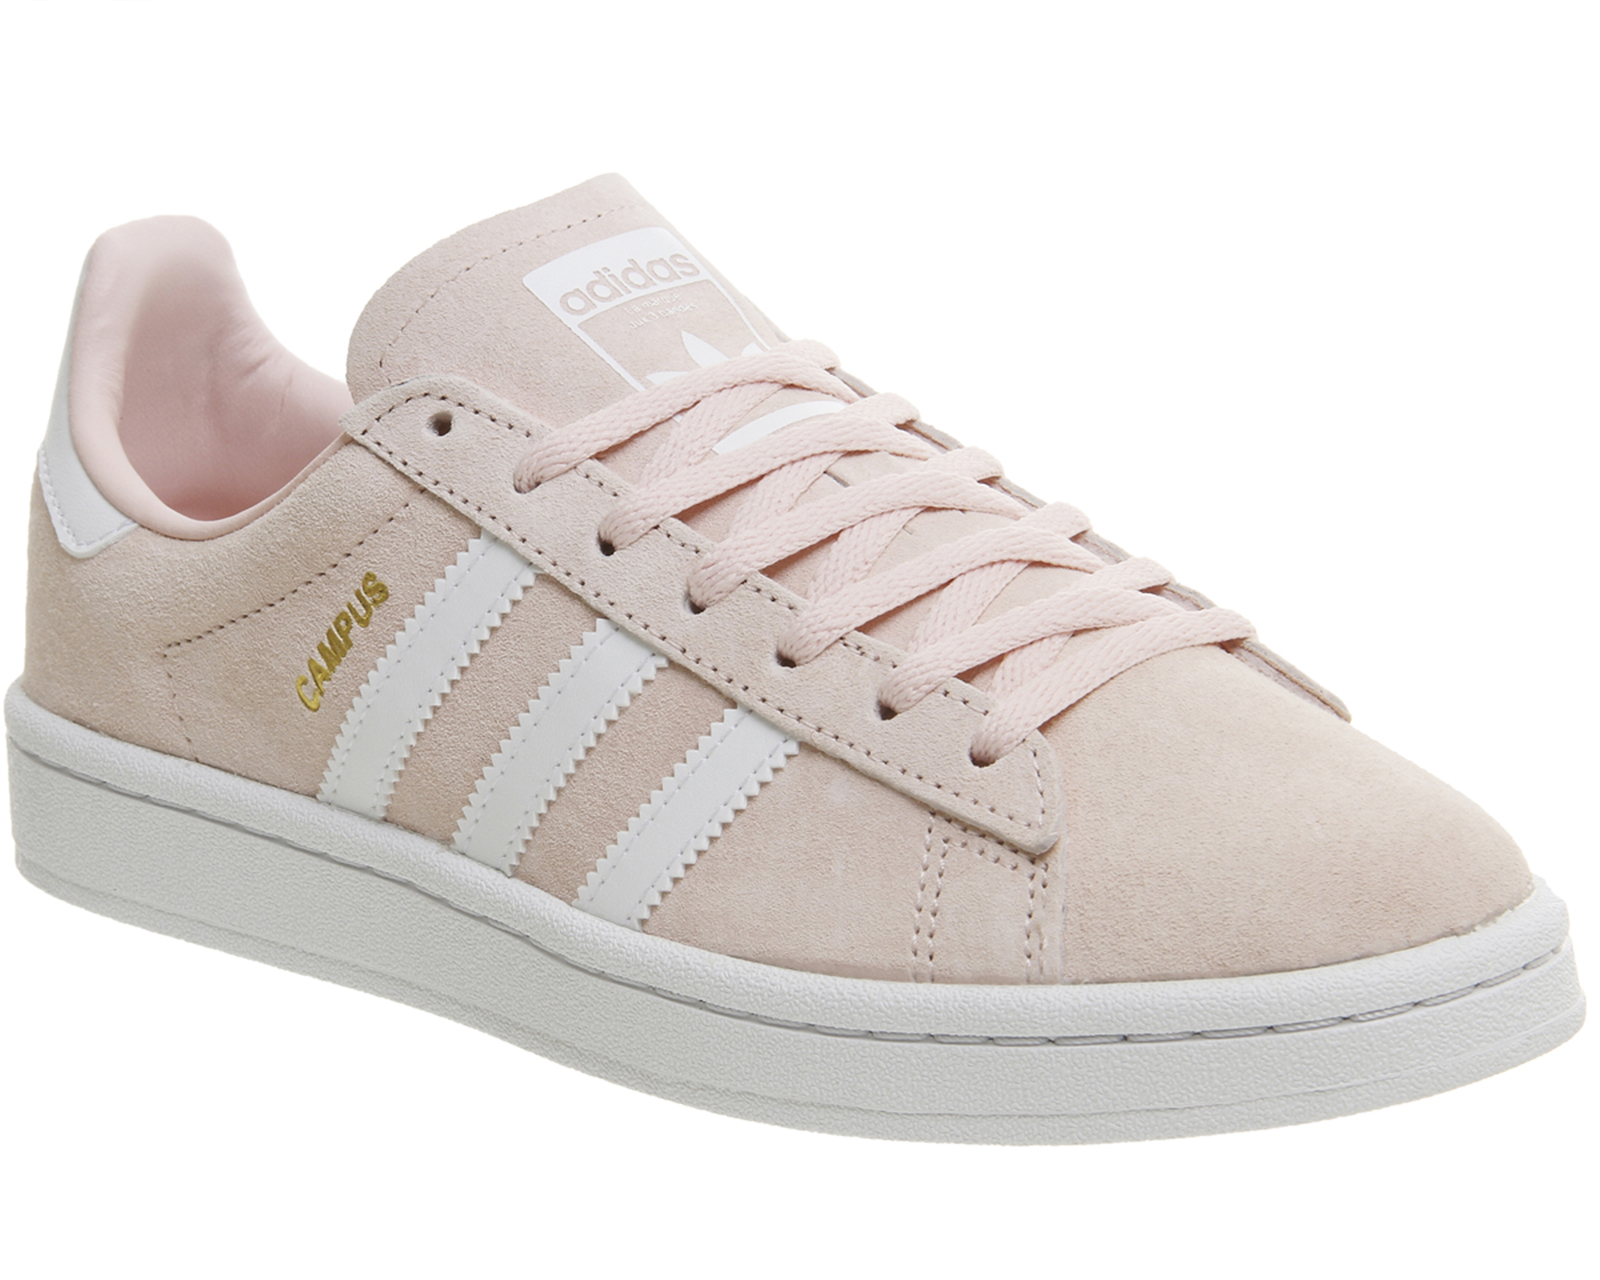 Buy Cheap Order Free Shipping Affordable adidas Campus Trainers In Very Cheap Sale Online 2018 New Online Outlet Store Locations Rq3GBqJ